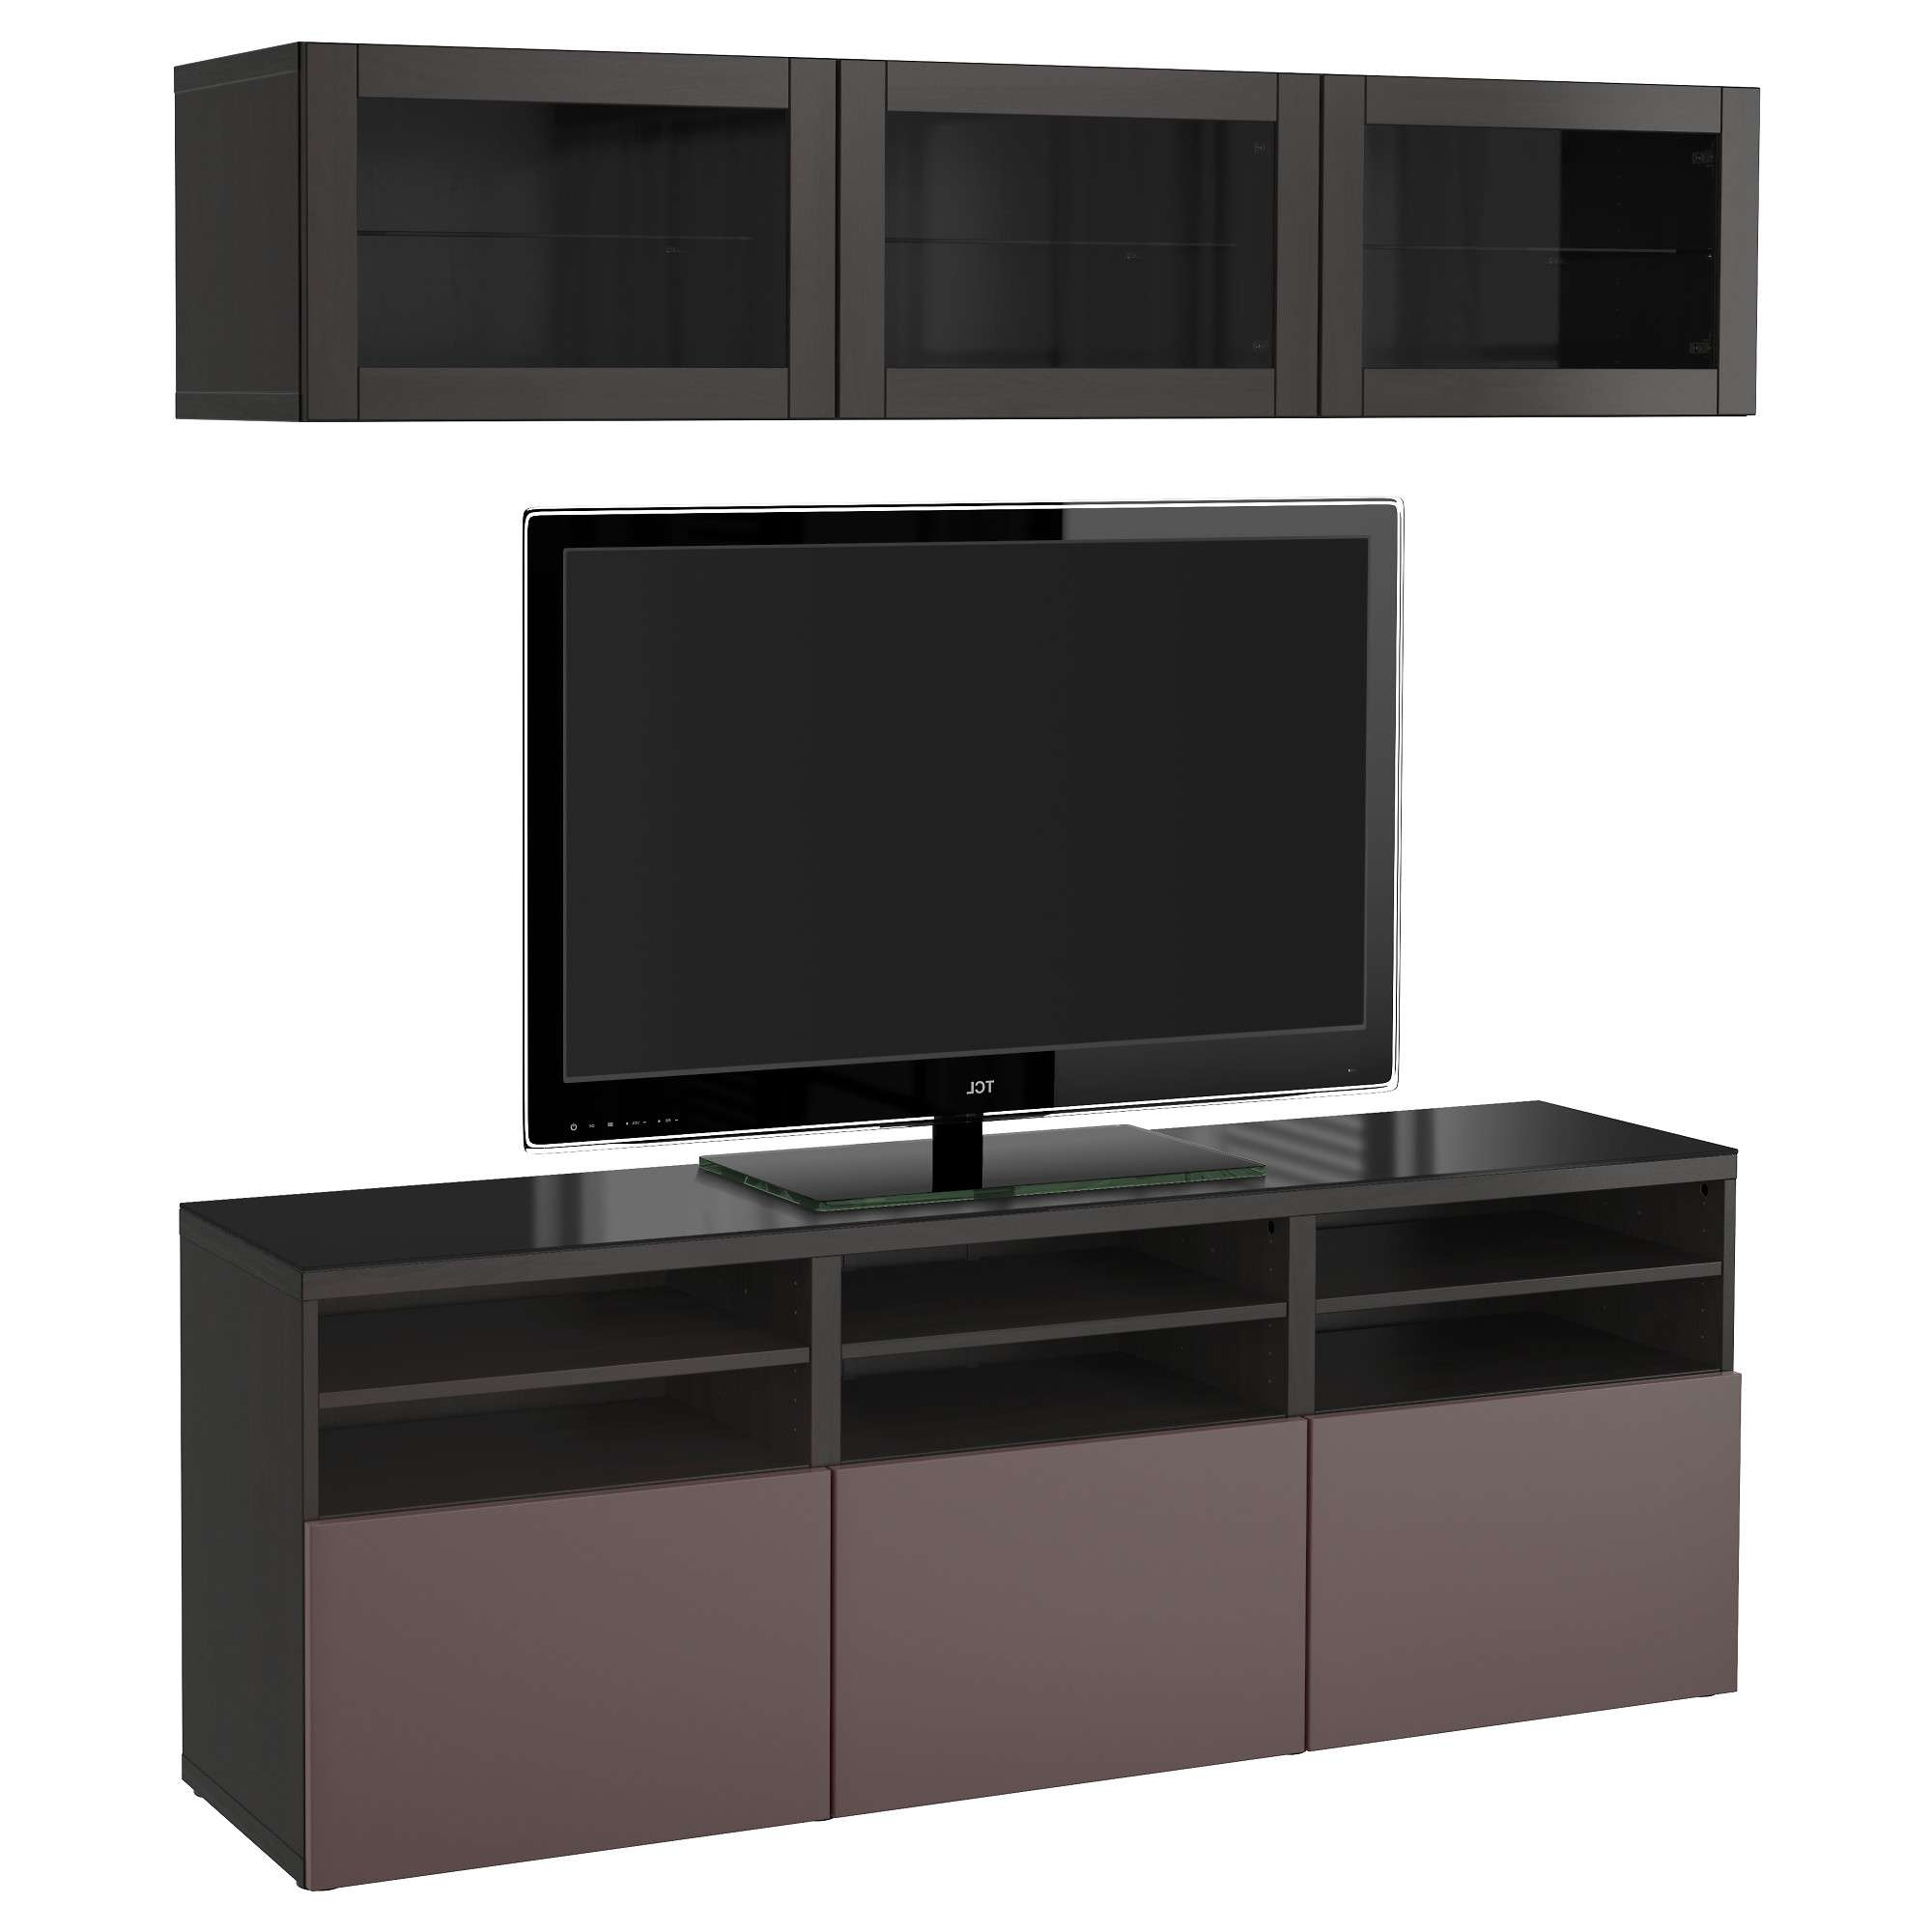 Tv Storage Unit | Tv Wall Units | Ikea Intended For Glass Tv Cabinets (View 20 of 20)